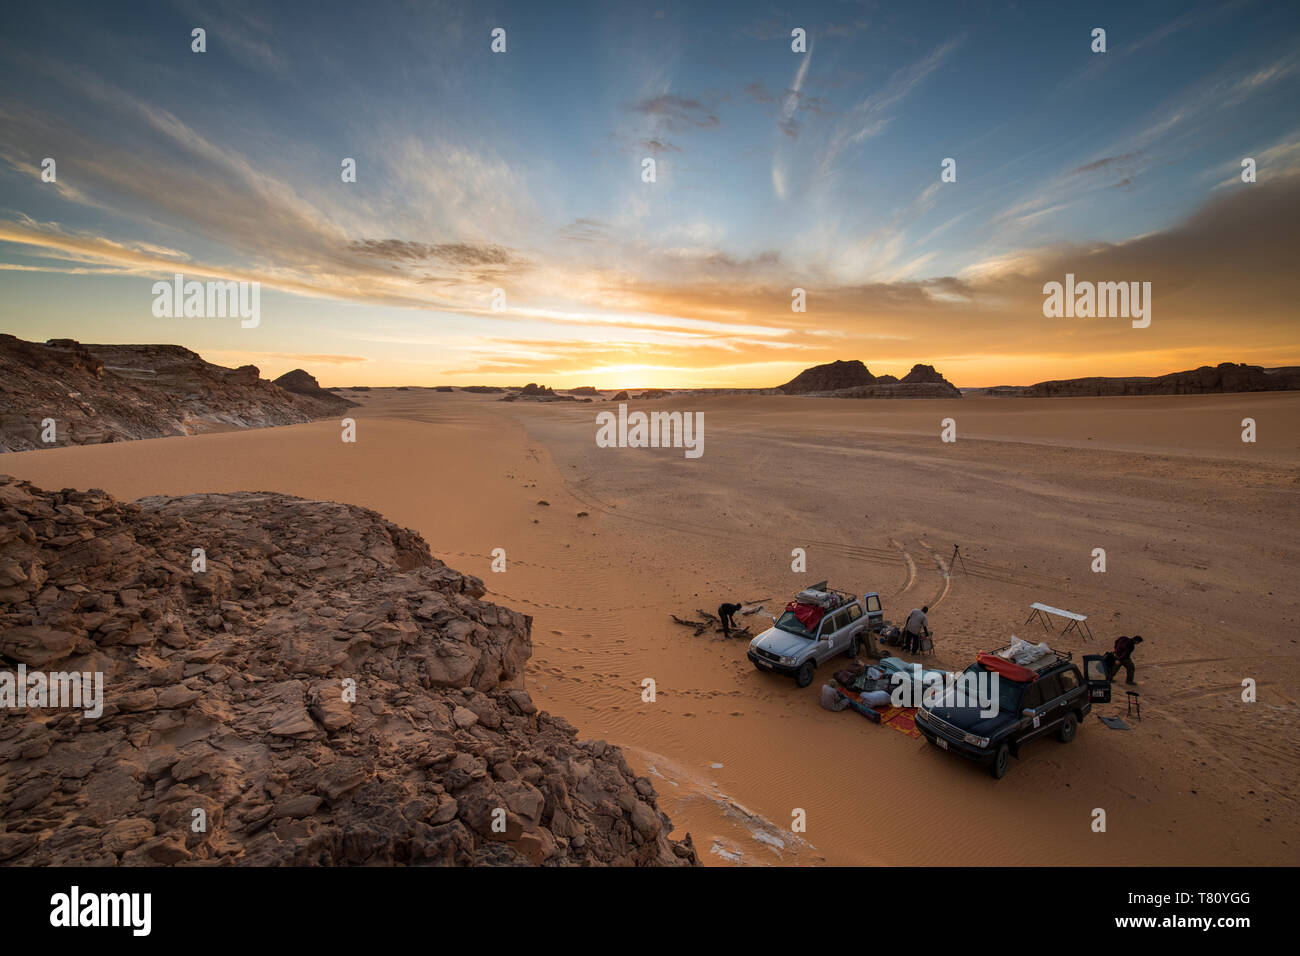 Expedition jeeps in Northern Chad, Africa - Stock Image